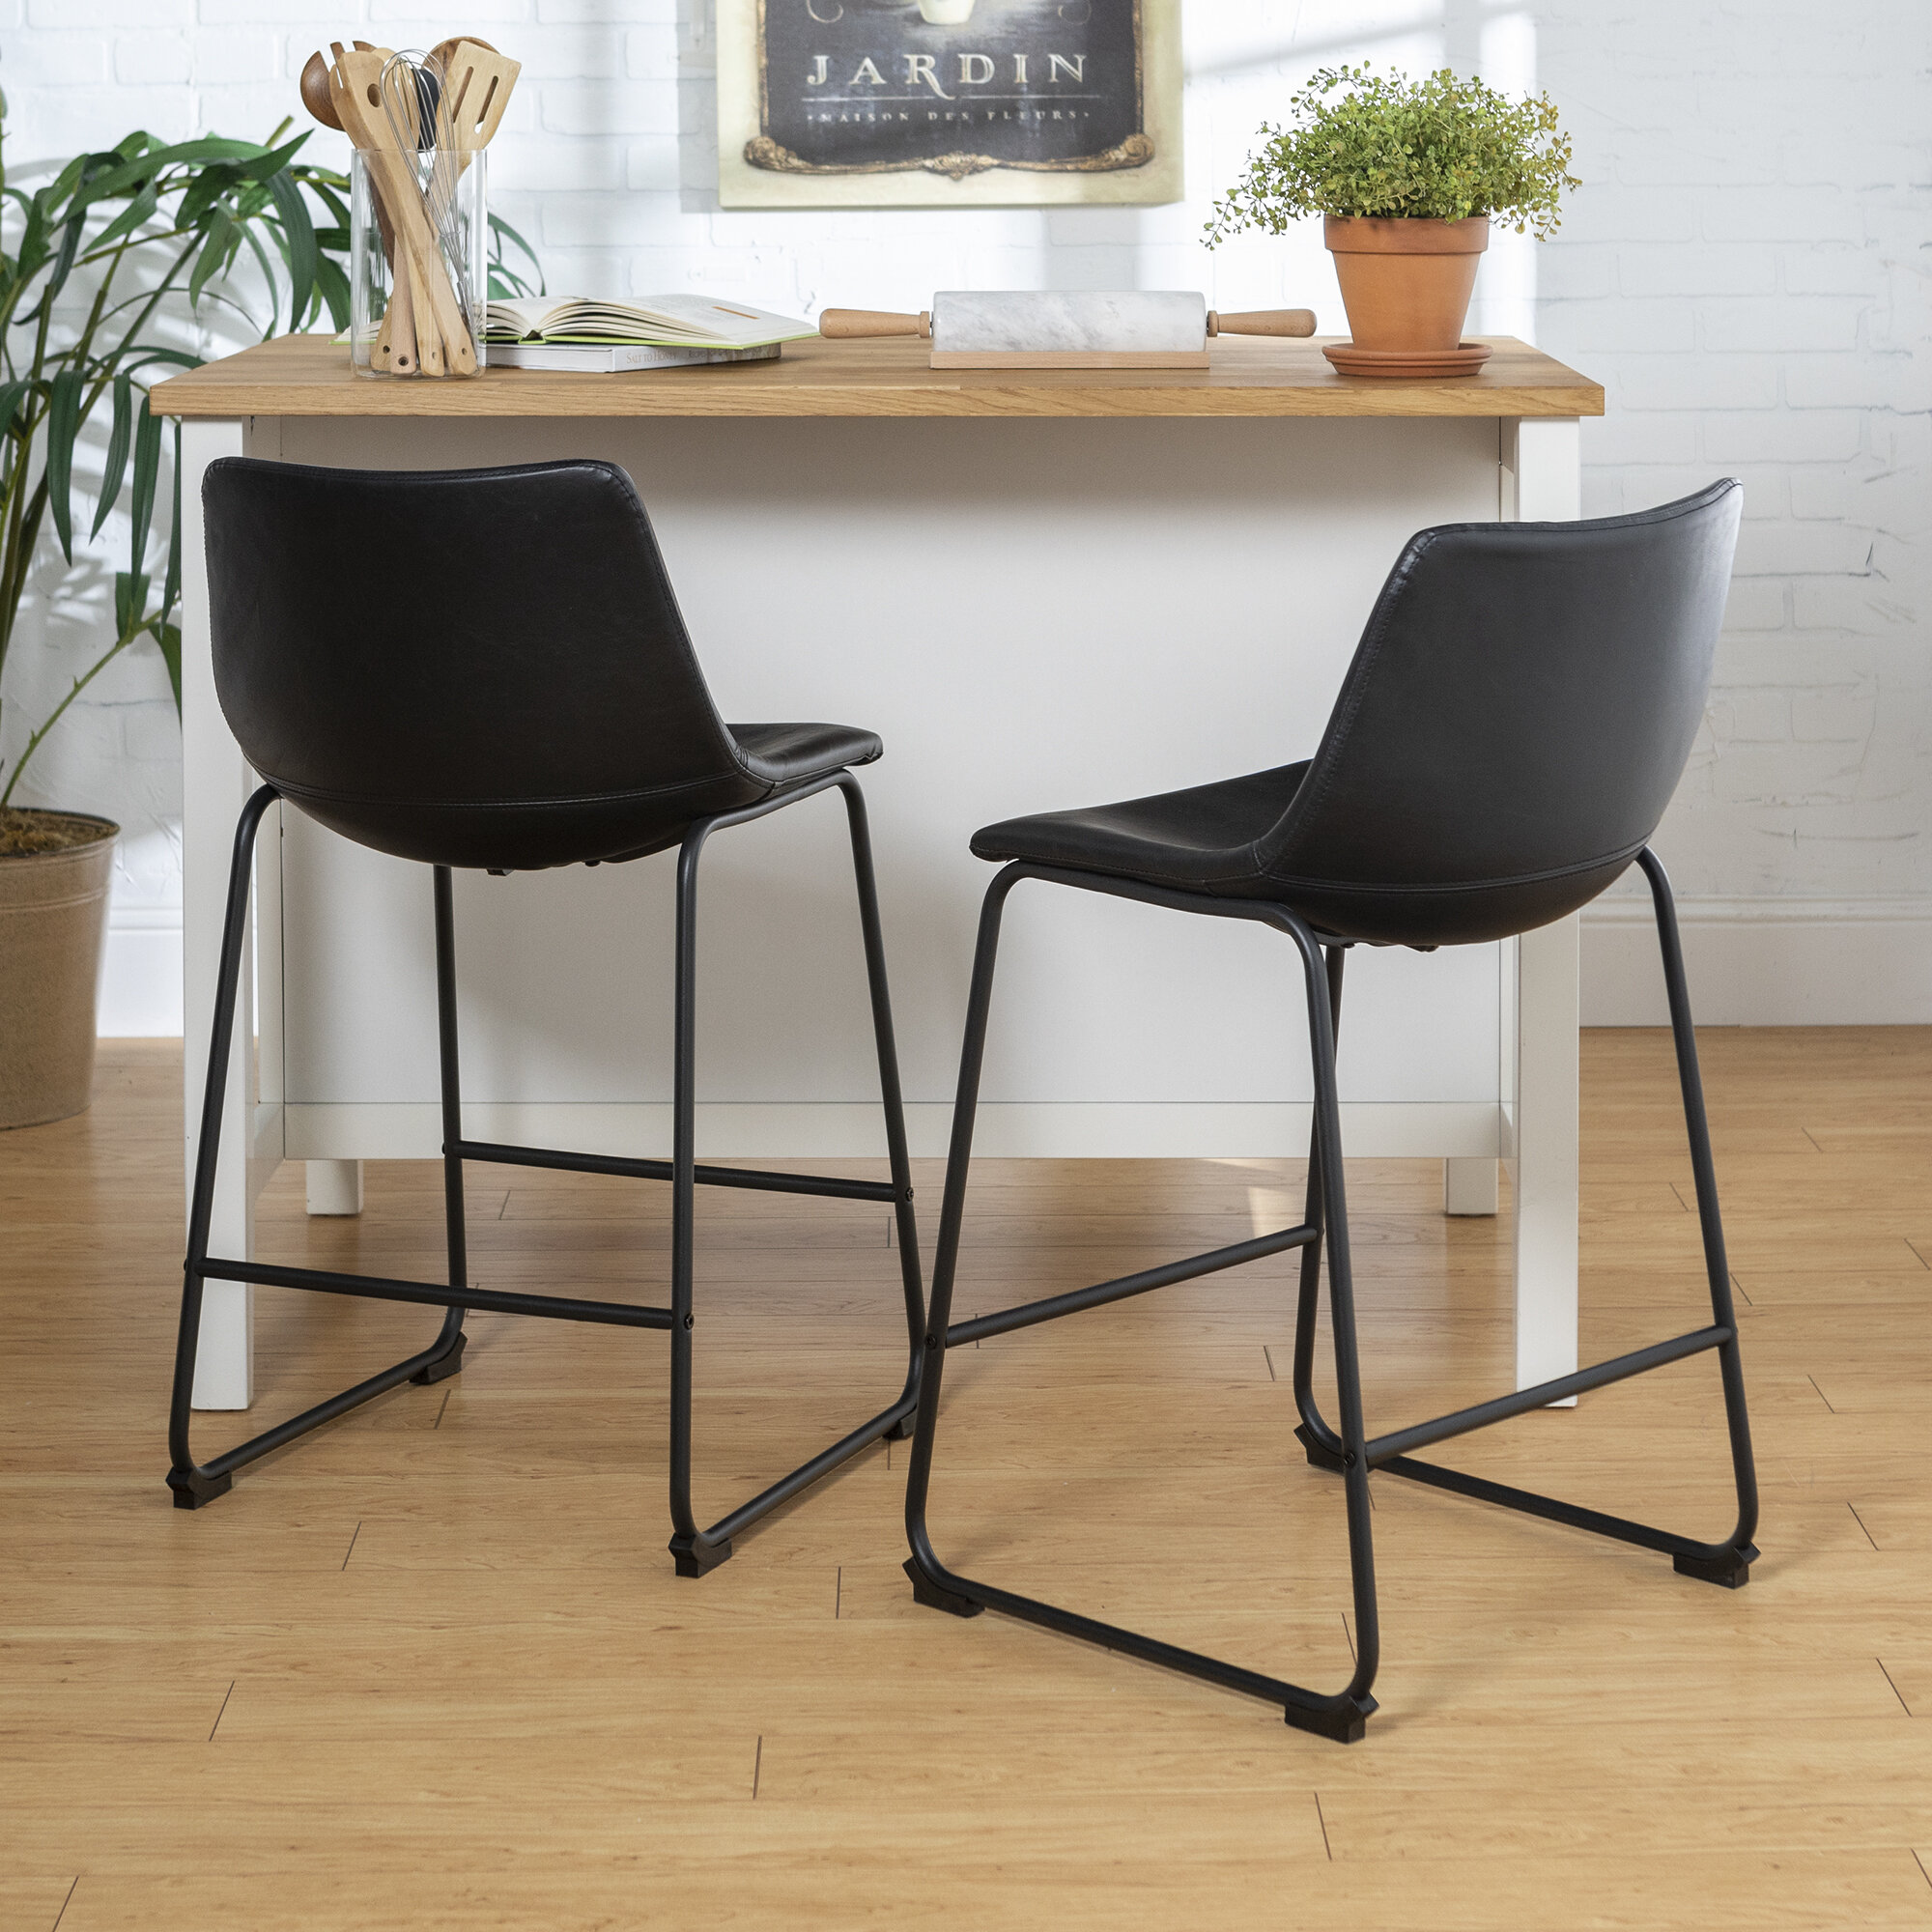 Bar Chair Bentwood Brown Leather Effect Chrome Base Kitchen Breakfast Stool